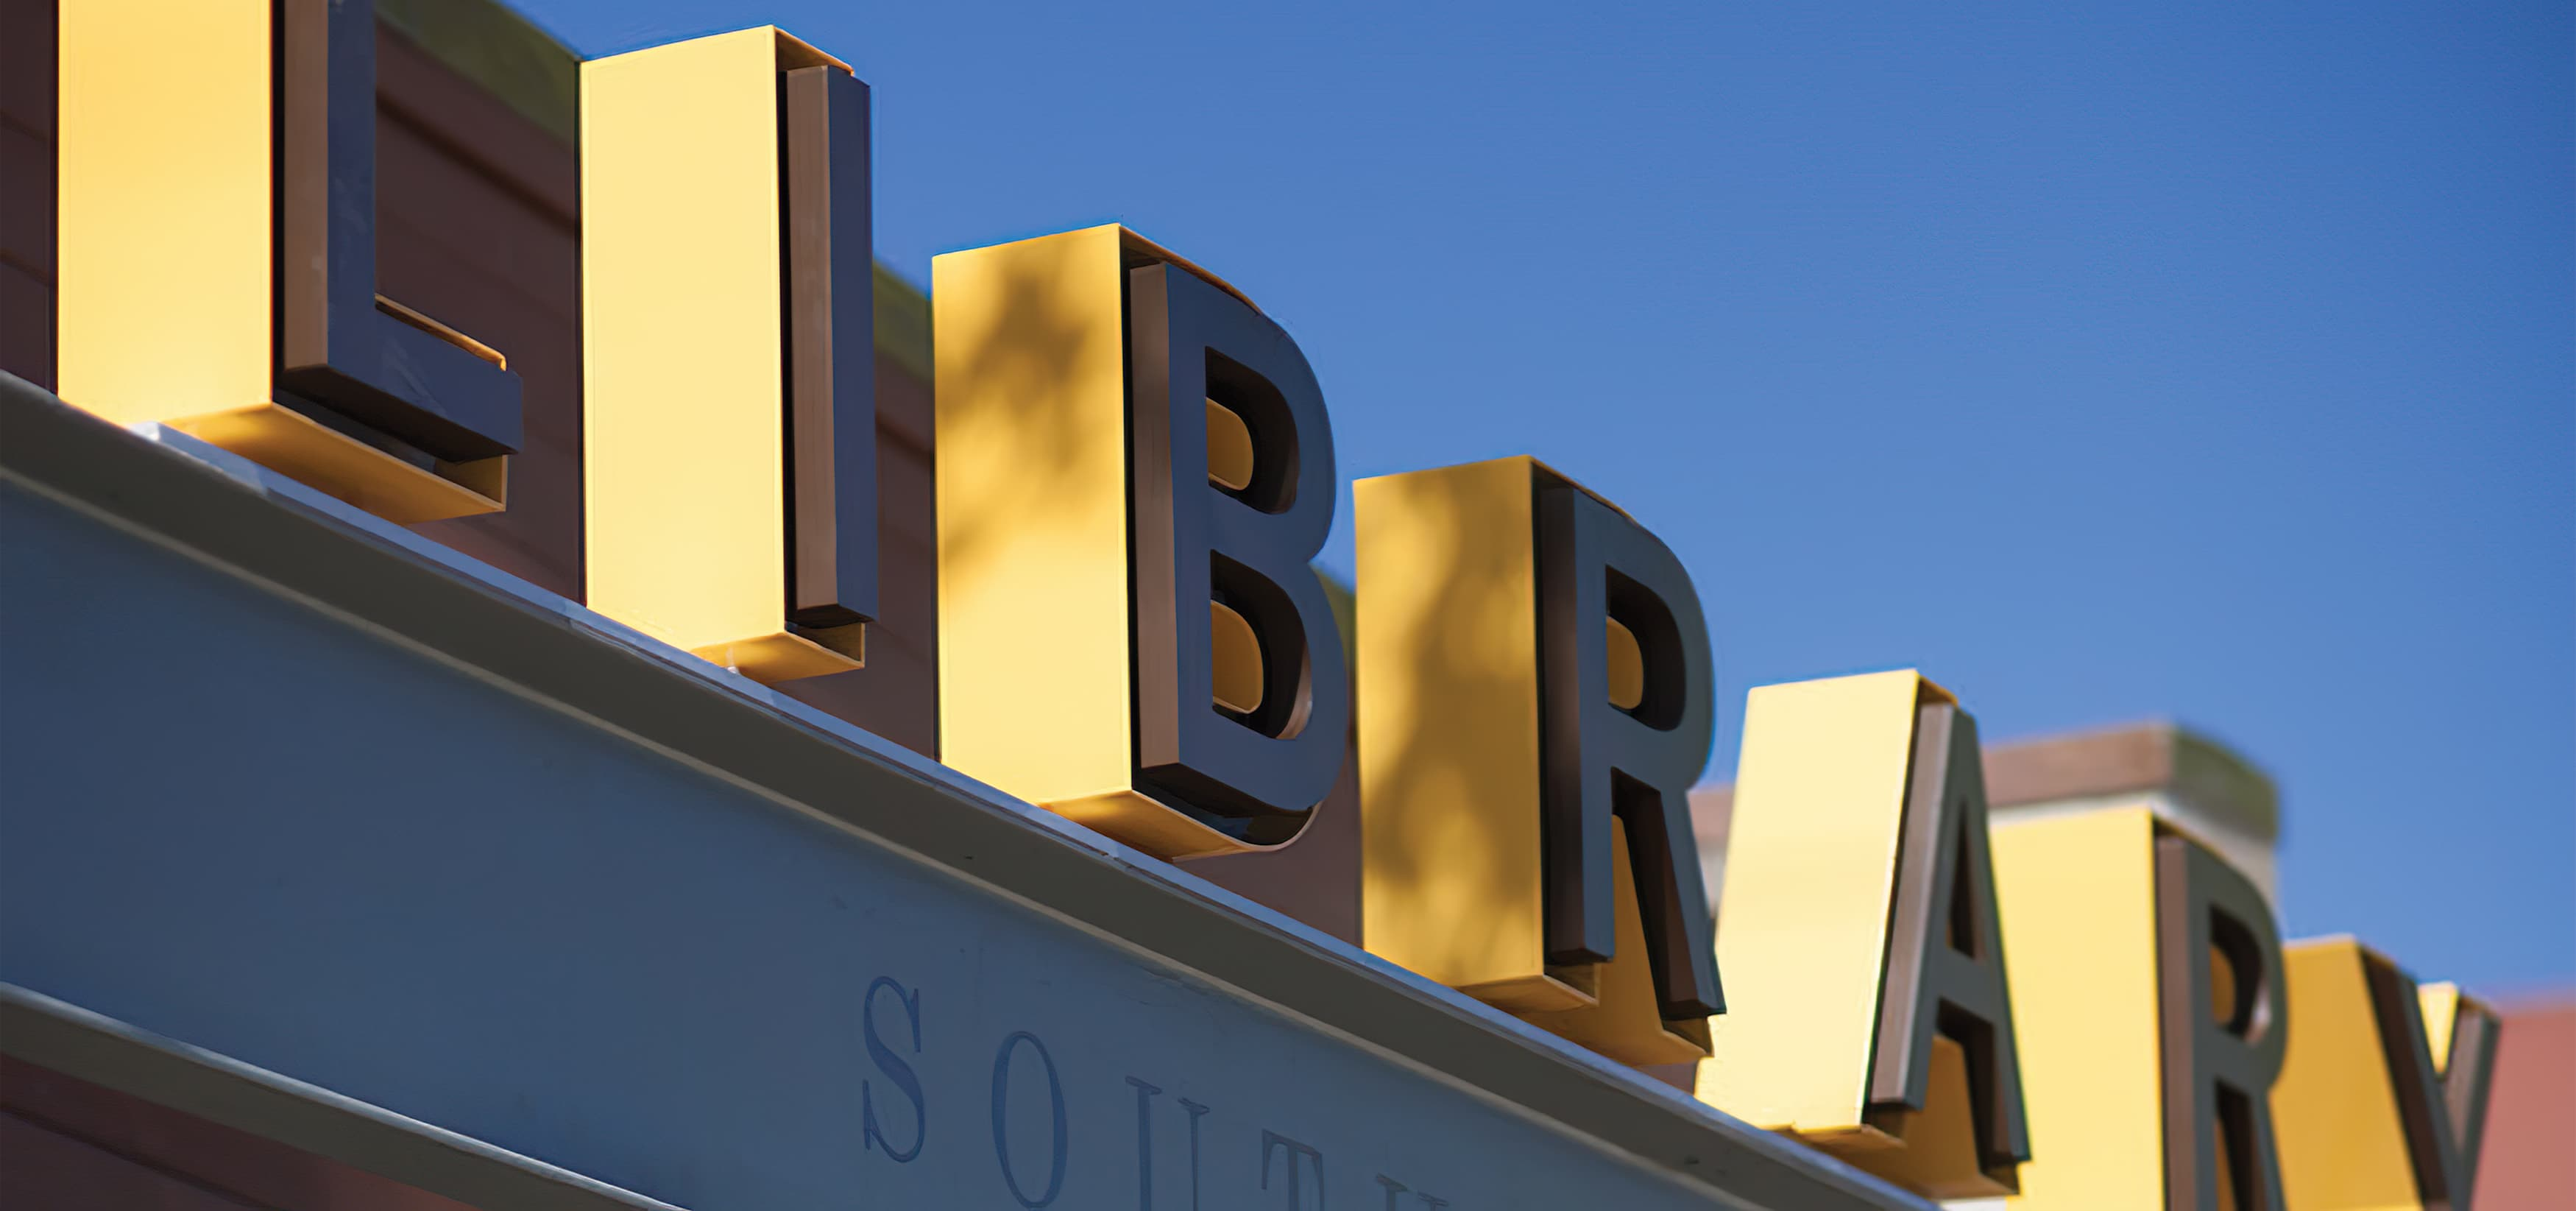 Berkeley Public Library South Branch. Our team developed a friendly and informative system of signage and placemaking elements in both the interior and exterior, our scope included identity and wayfinding signage. Fascia Signage.